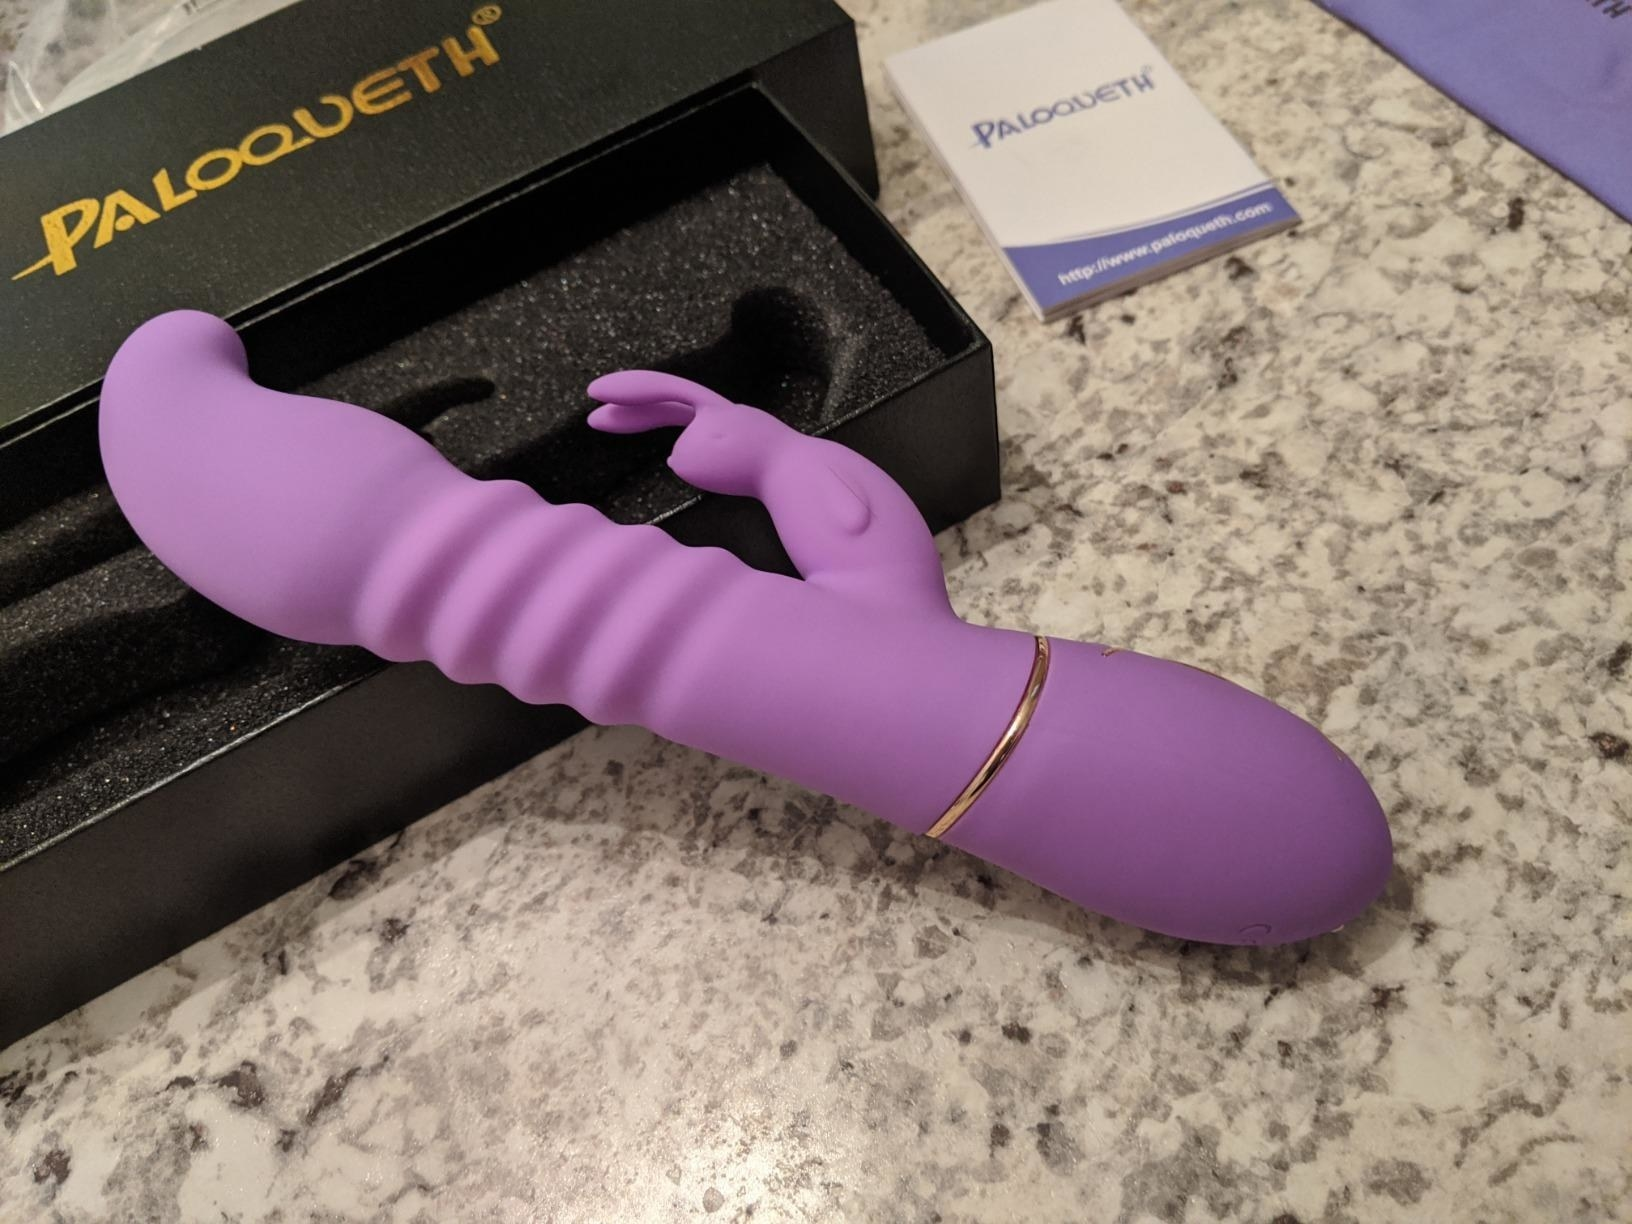 The PALOQUETH Thrusting Rabbit Vibrator and its packaging on a customer's countertop